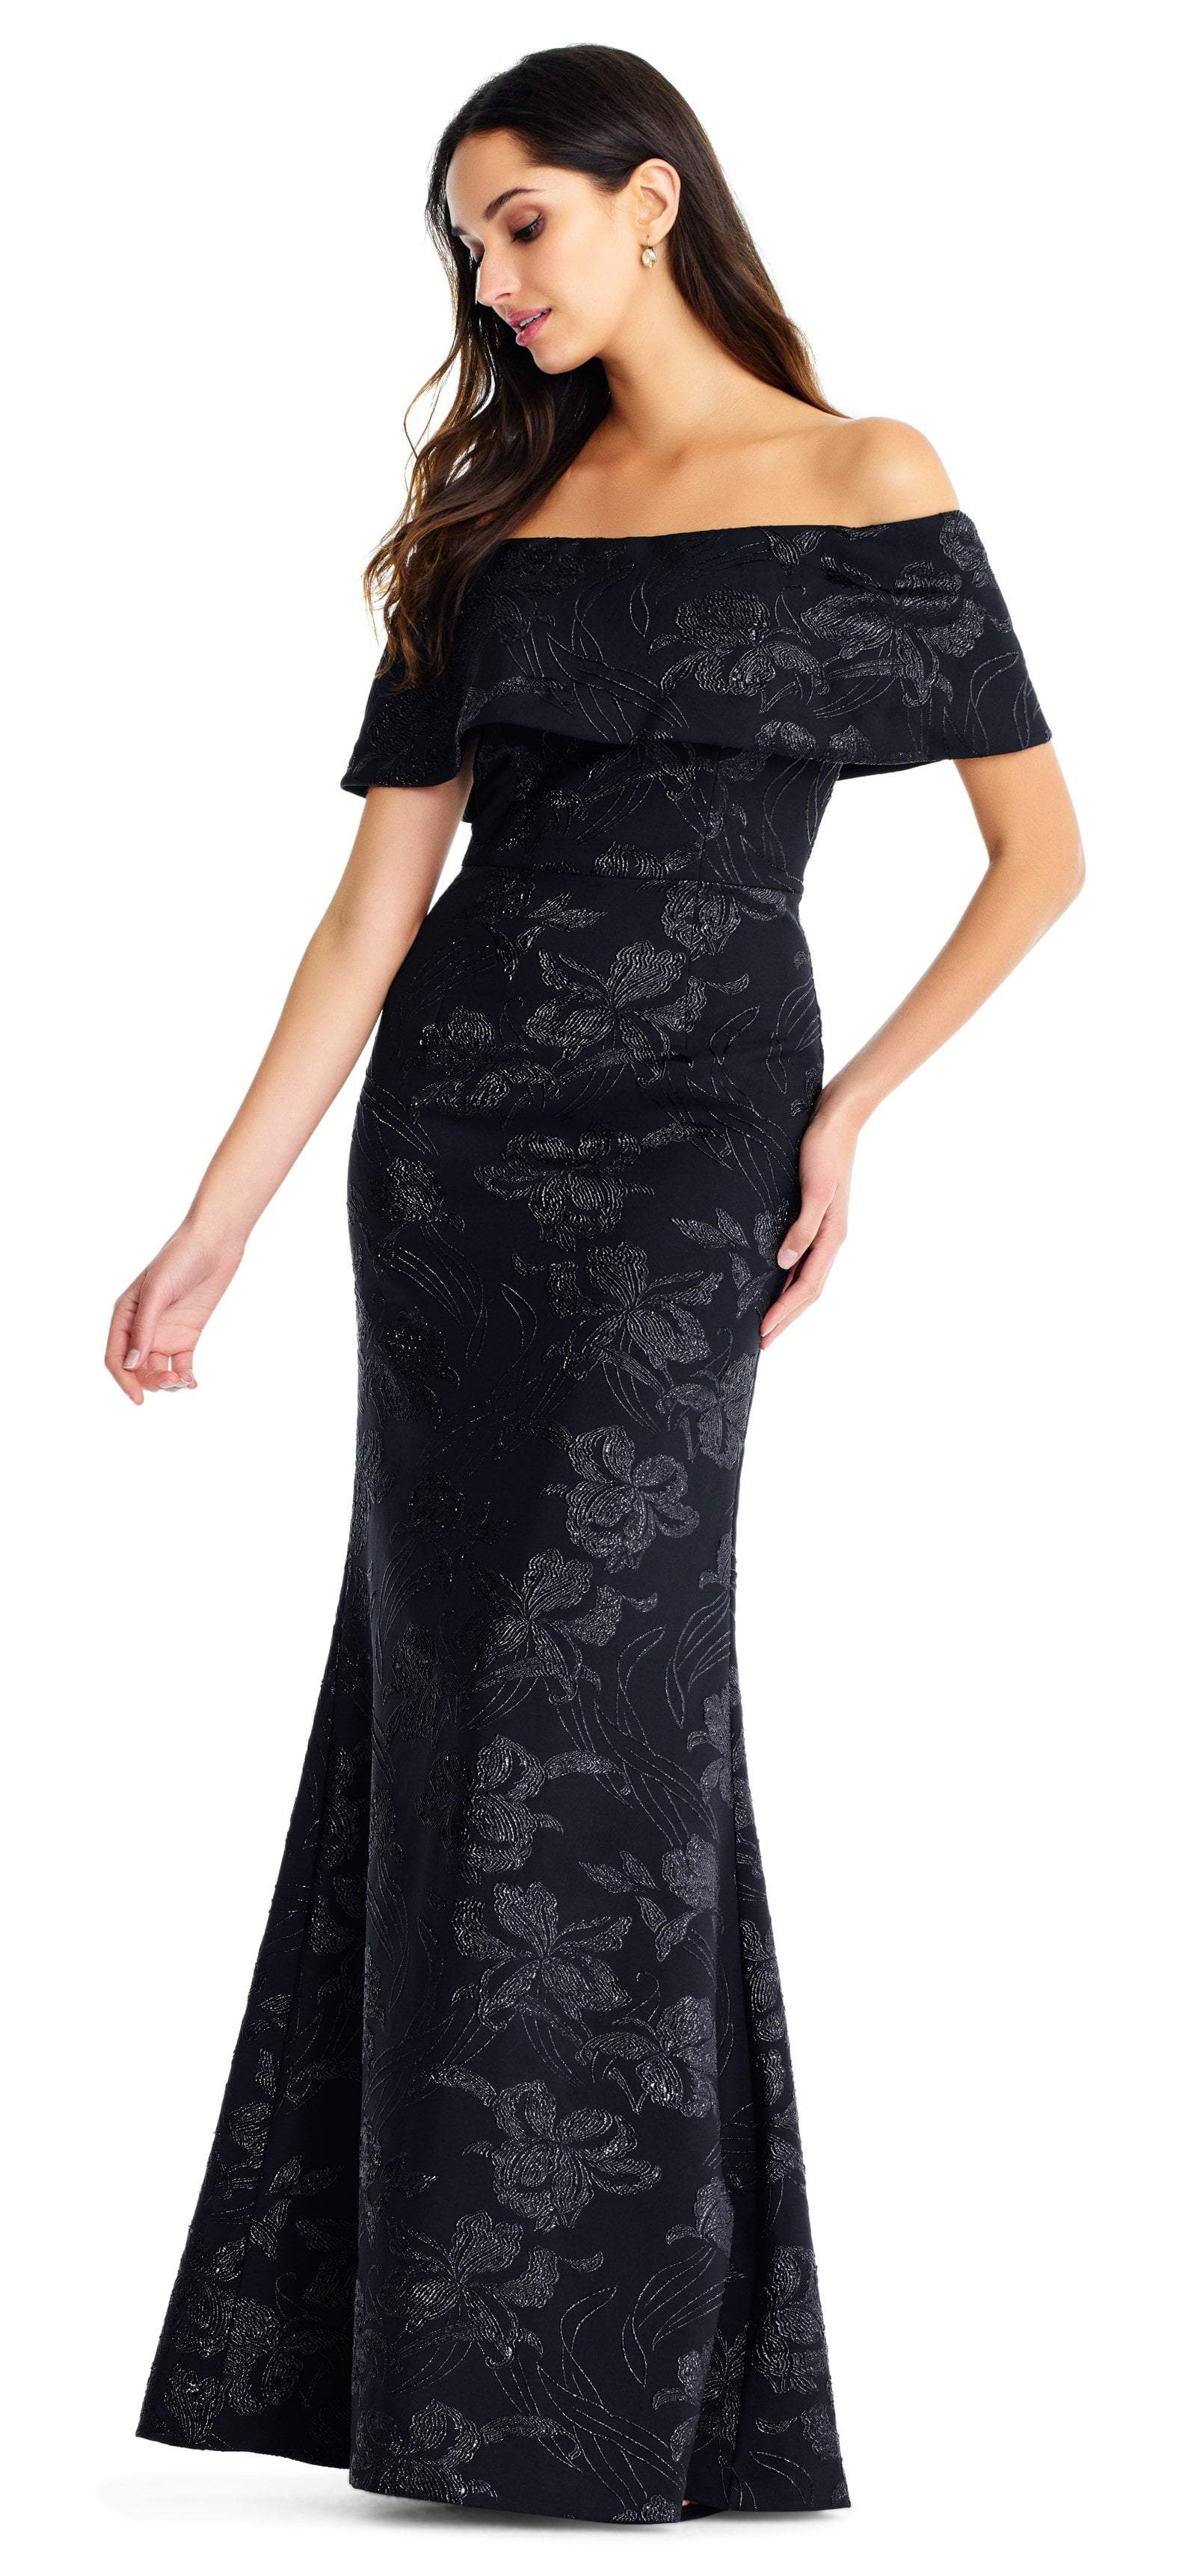 Aidan Mattox - MD1E203576 Off-Shoulder Floral Printed Trumpet Gown In Black